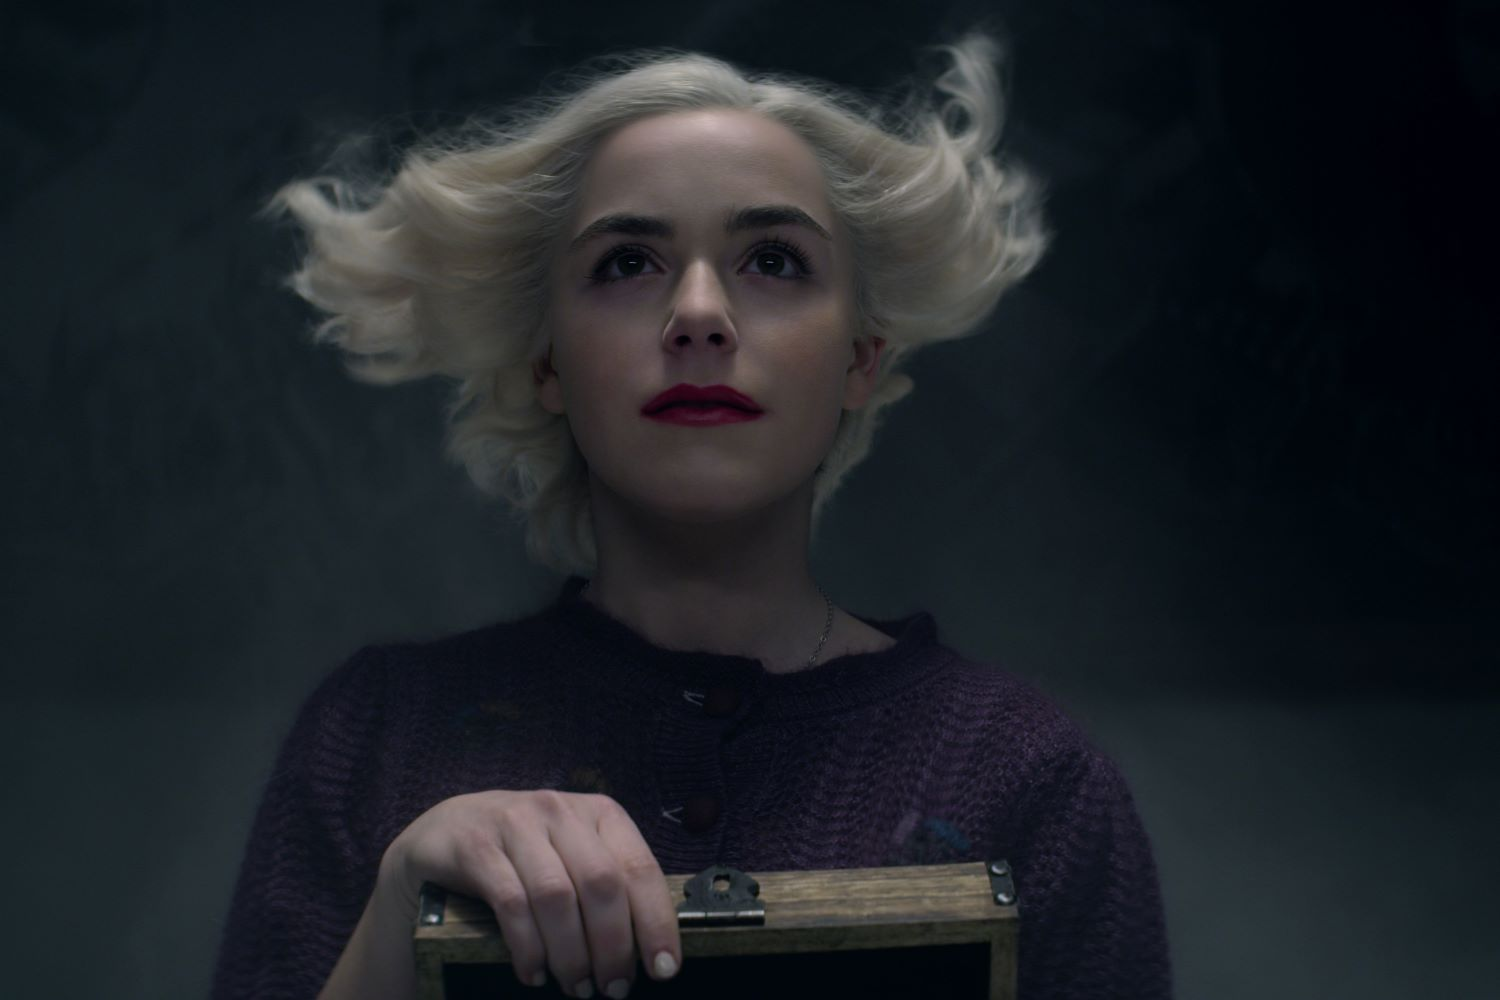 Kiernan Shipka on 'Chilling Adventures of Sabrina'